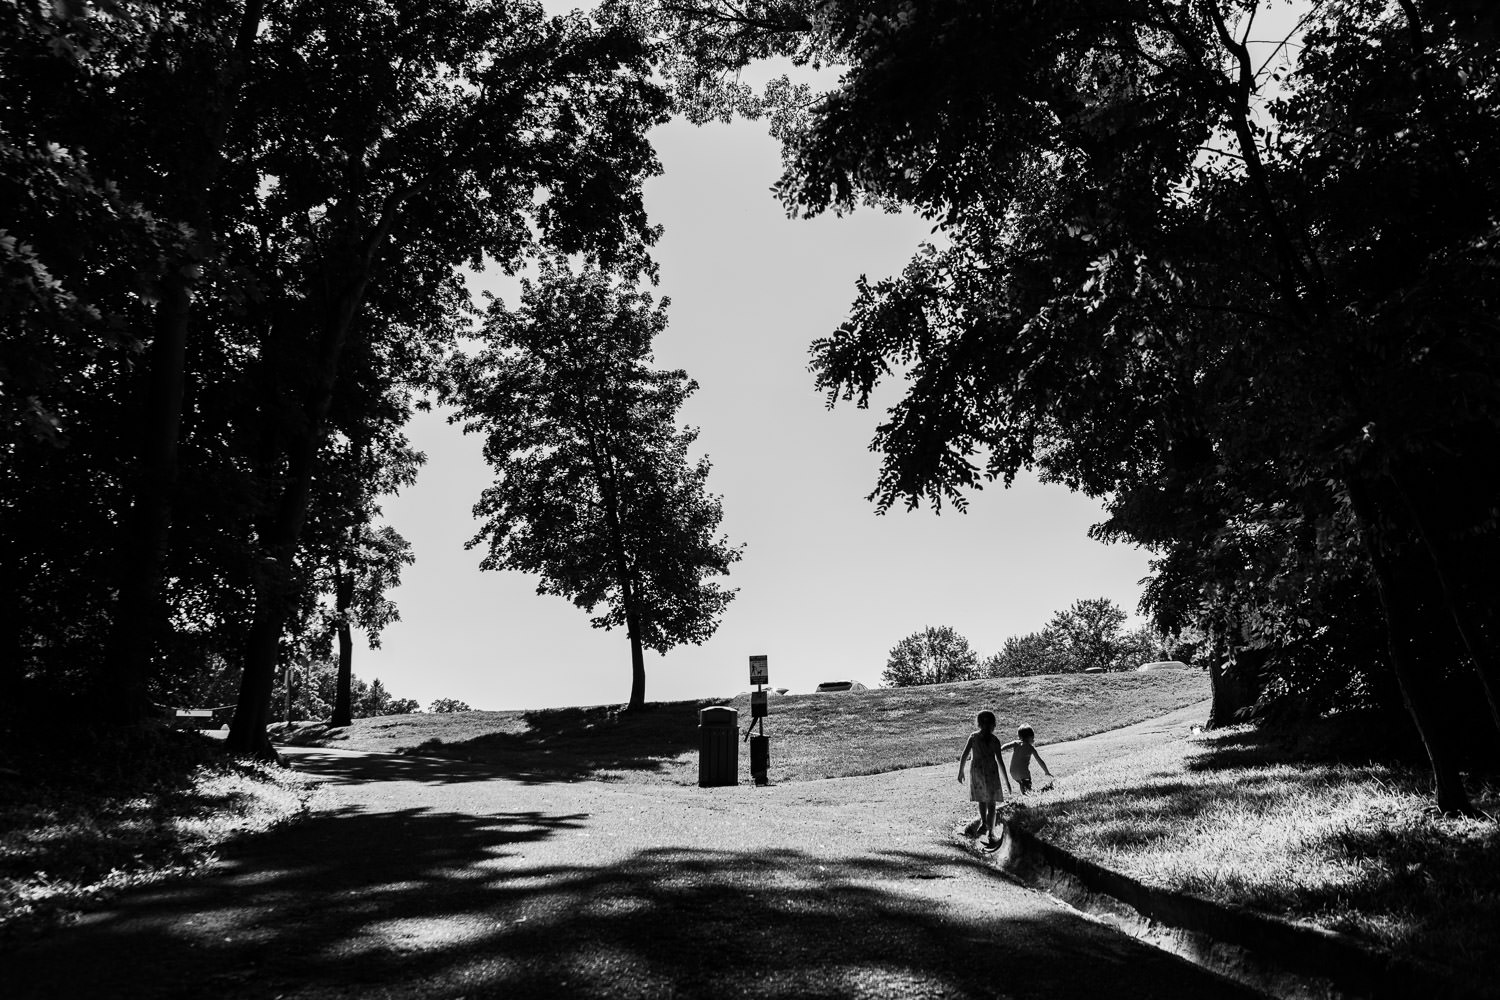 A silhouette of a boy and girl walking along a trail.